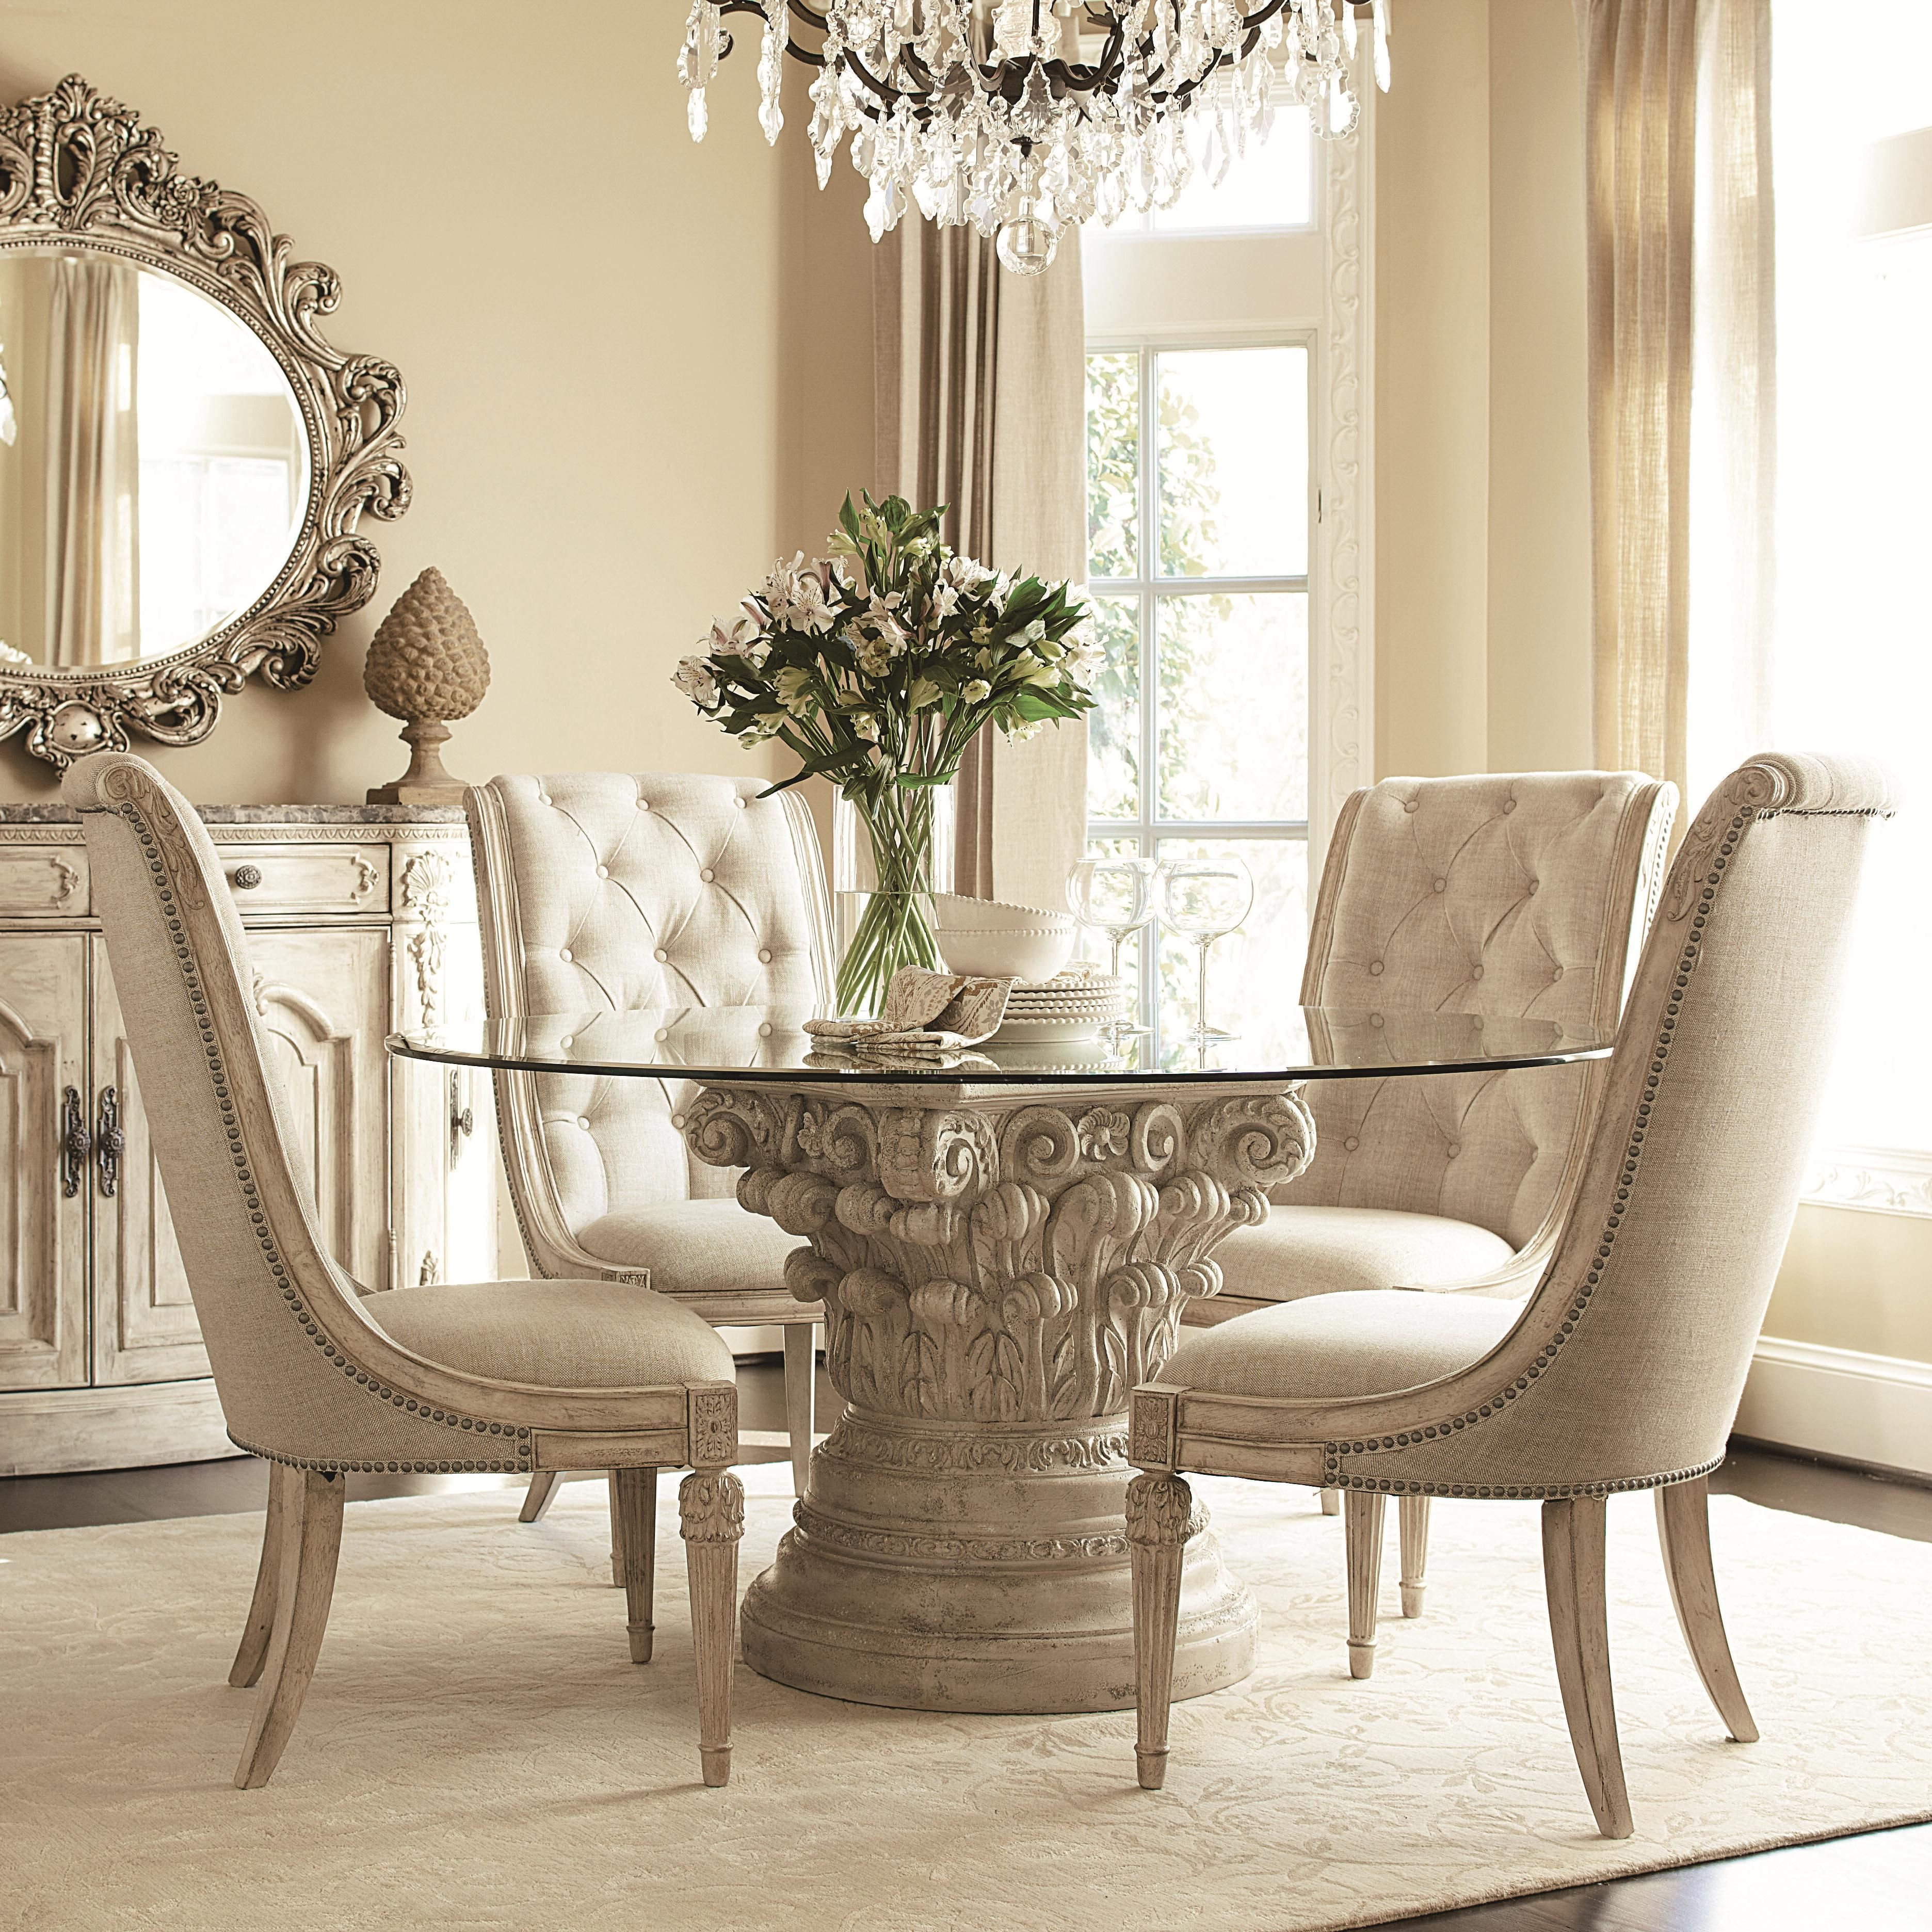 Dining Room Furniture Glass Jessica Mcclintock Home The Boutique Collection 5 Piece